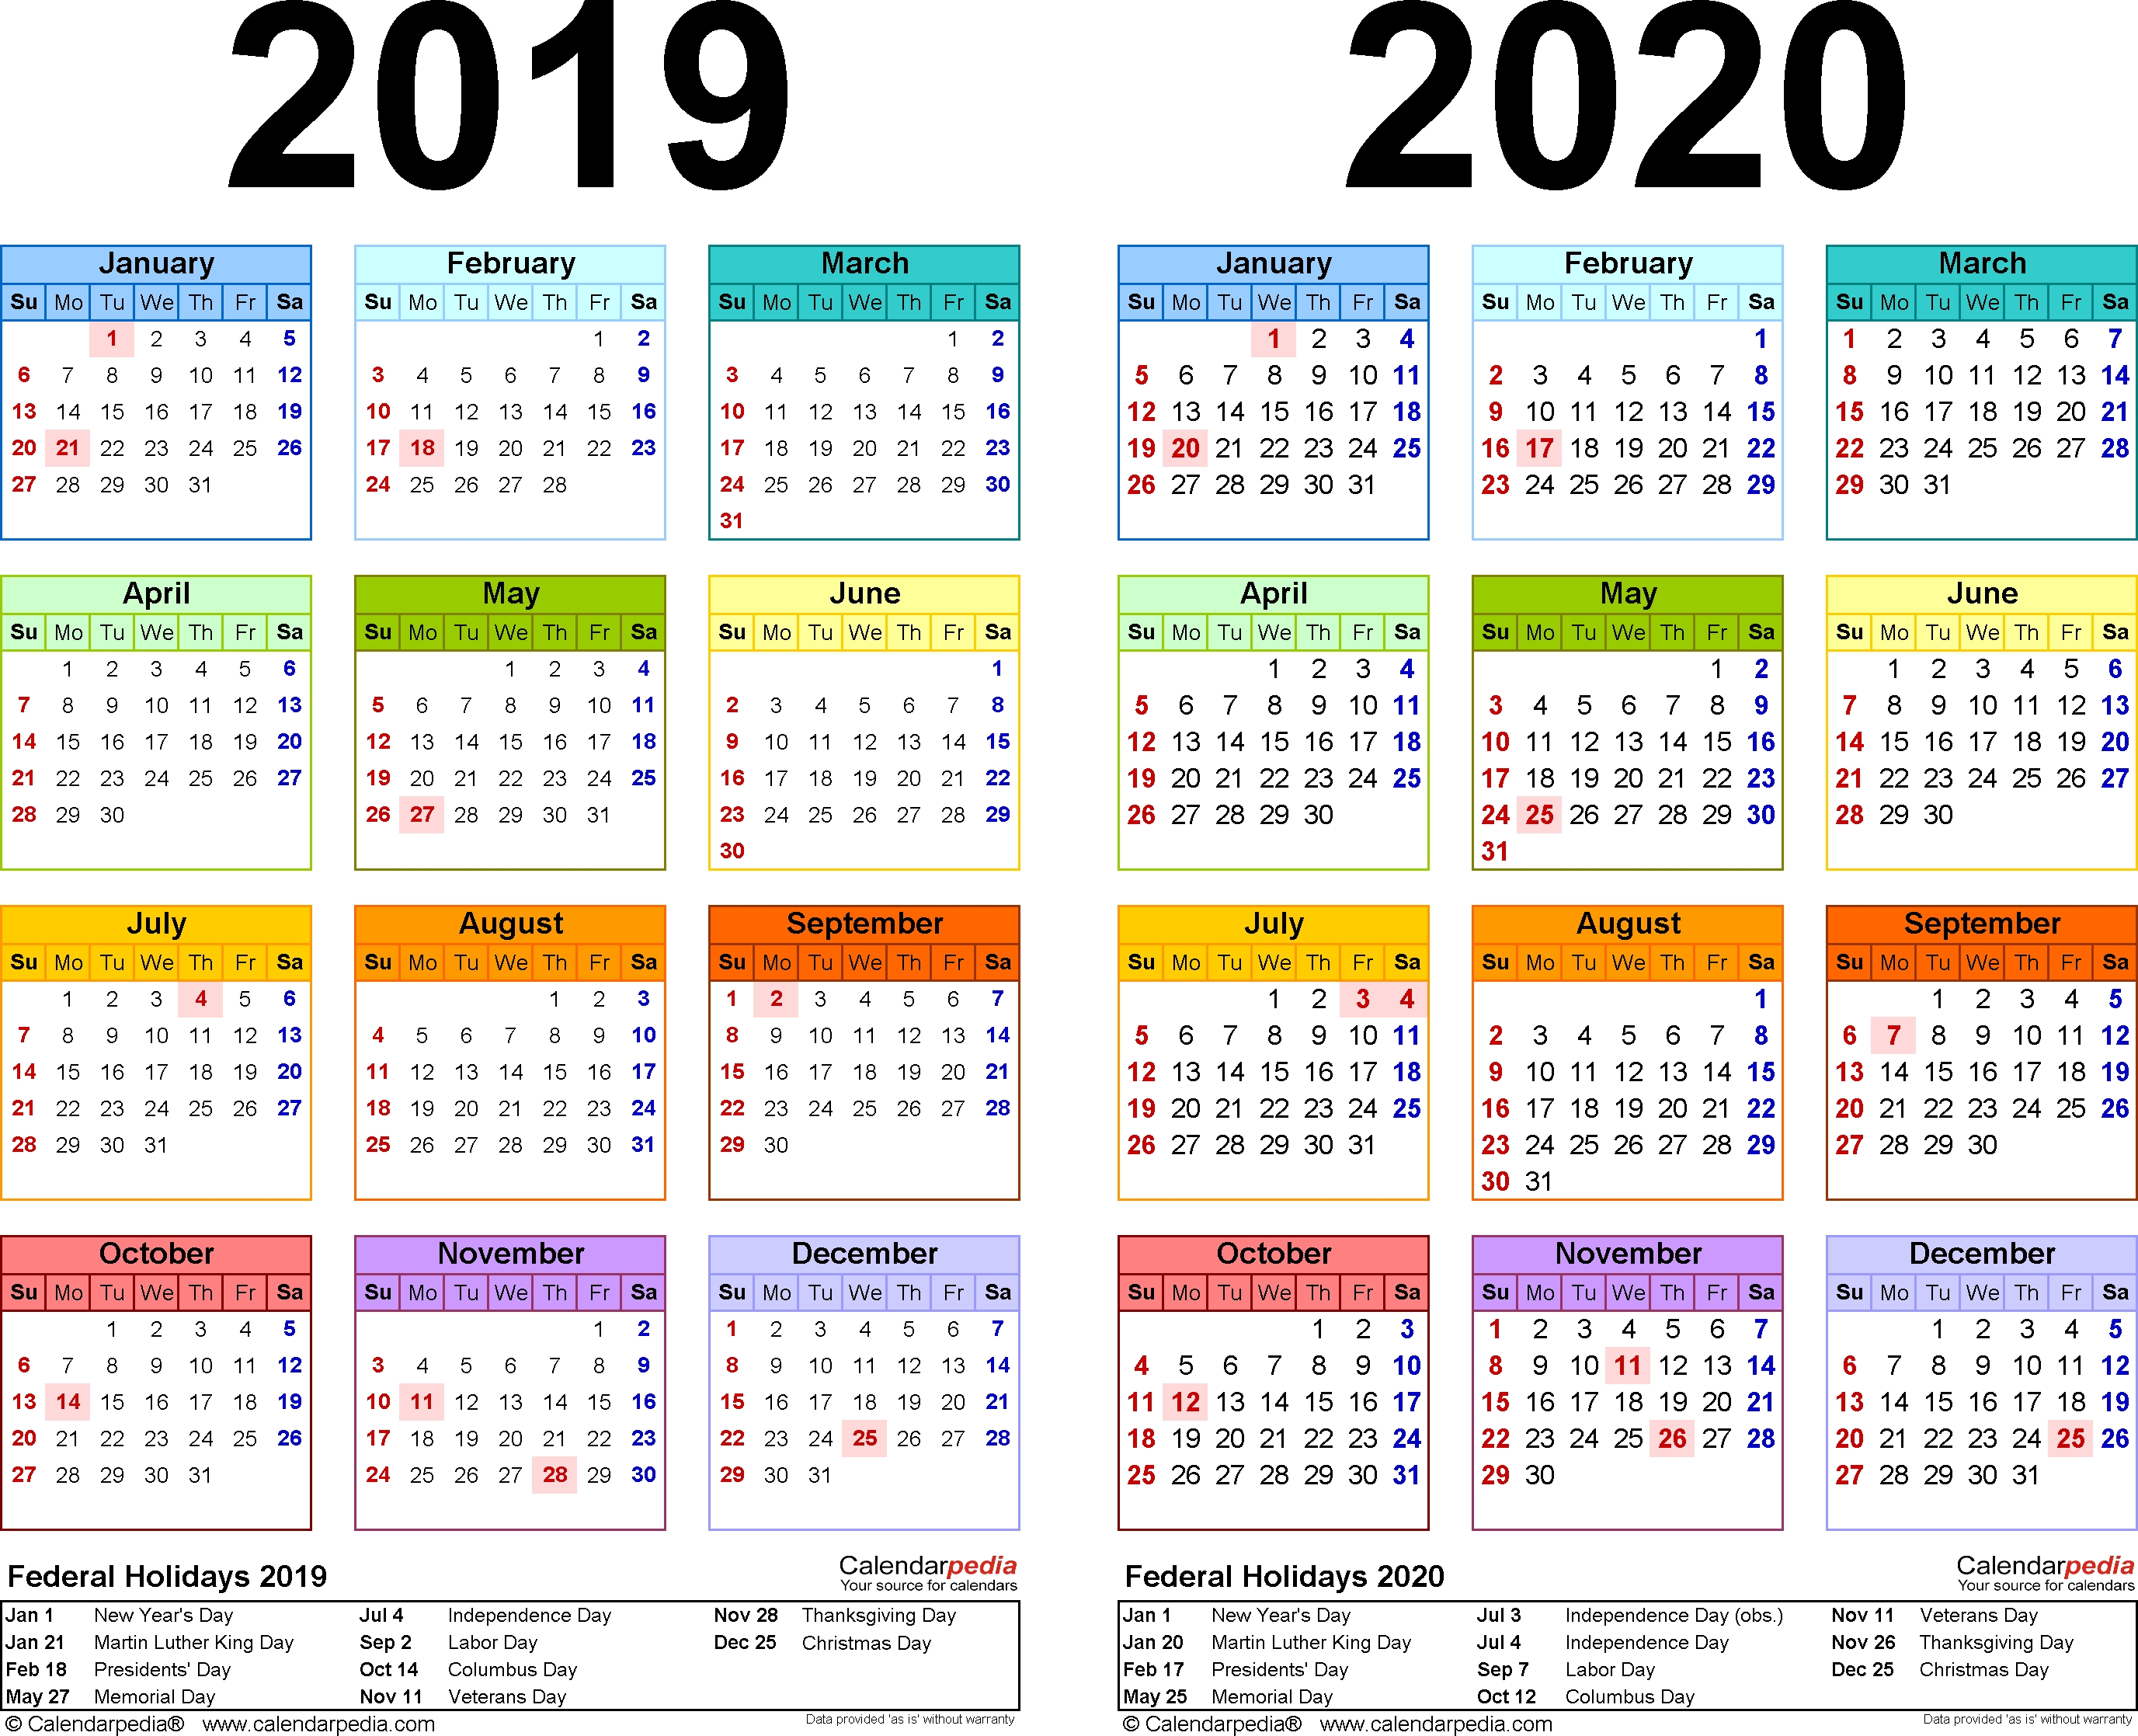 2019-2020 Calendar - Free Printable Two-Year Pdf Calendars within 2019- 2020 Academic Calendar Printable Empty Boxes